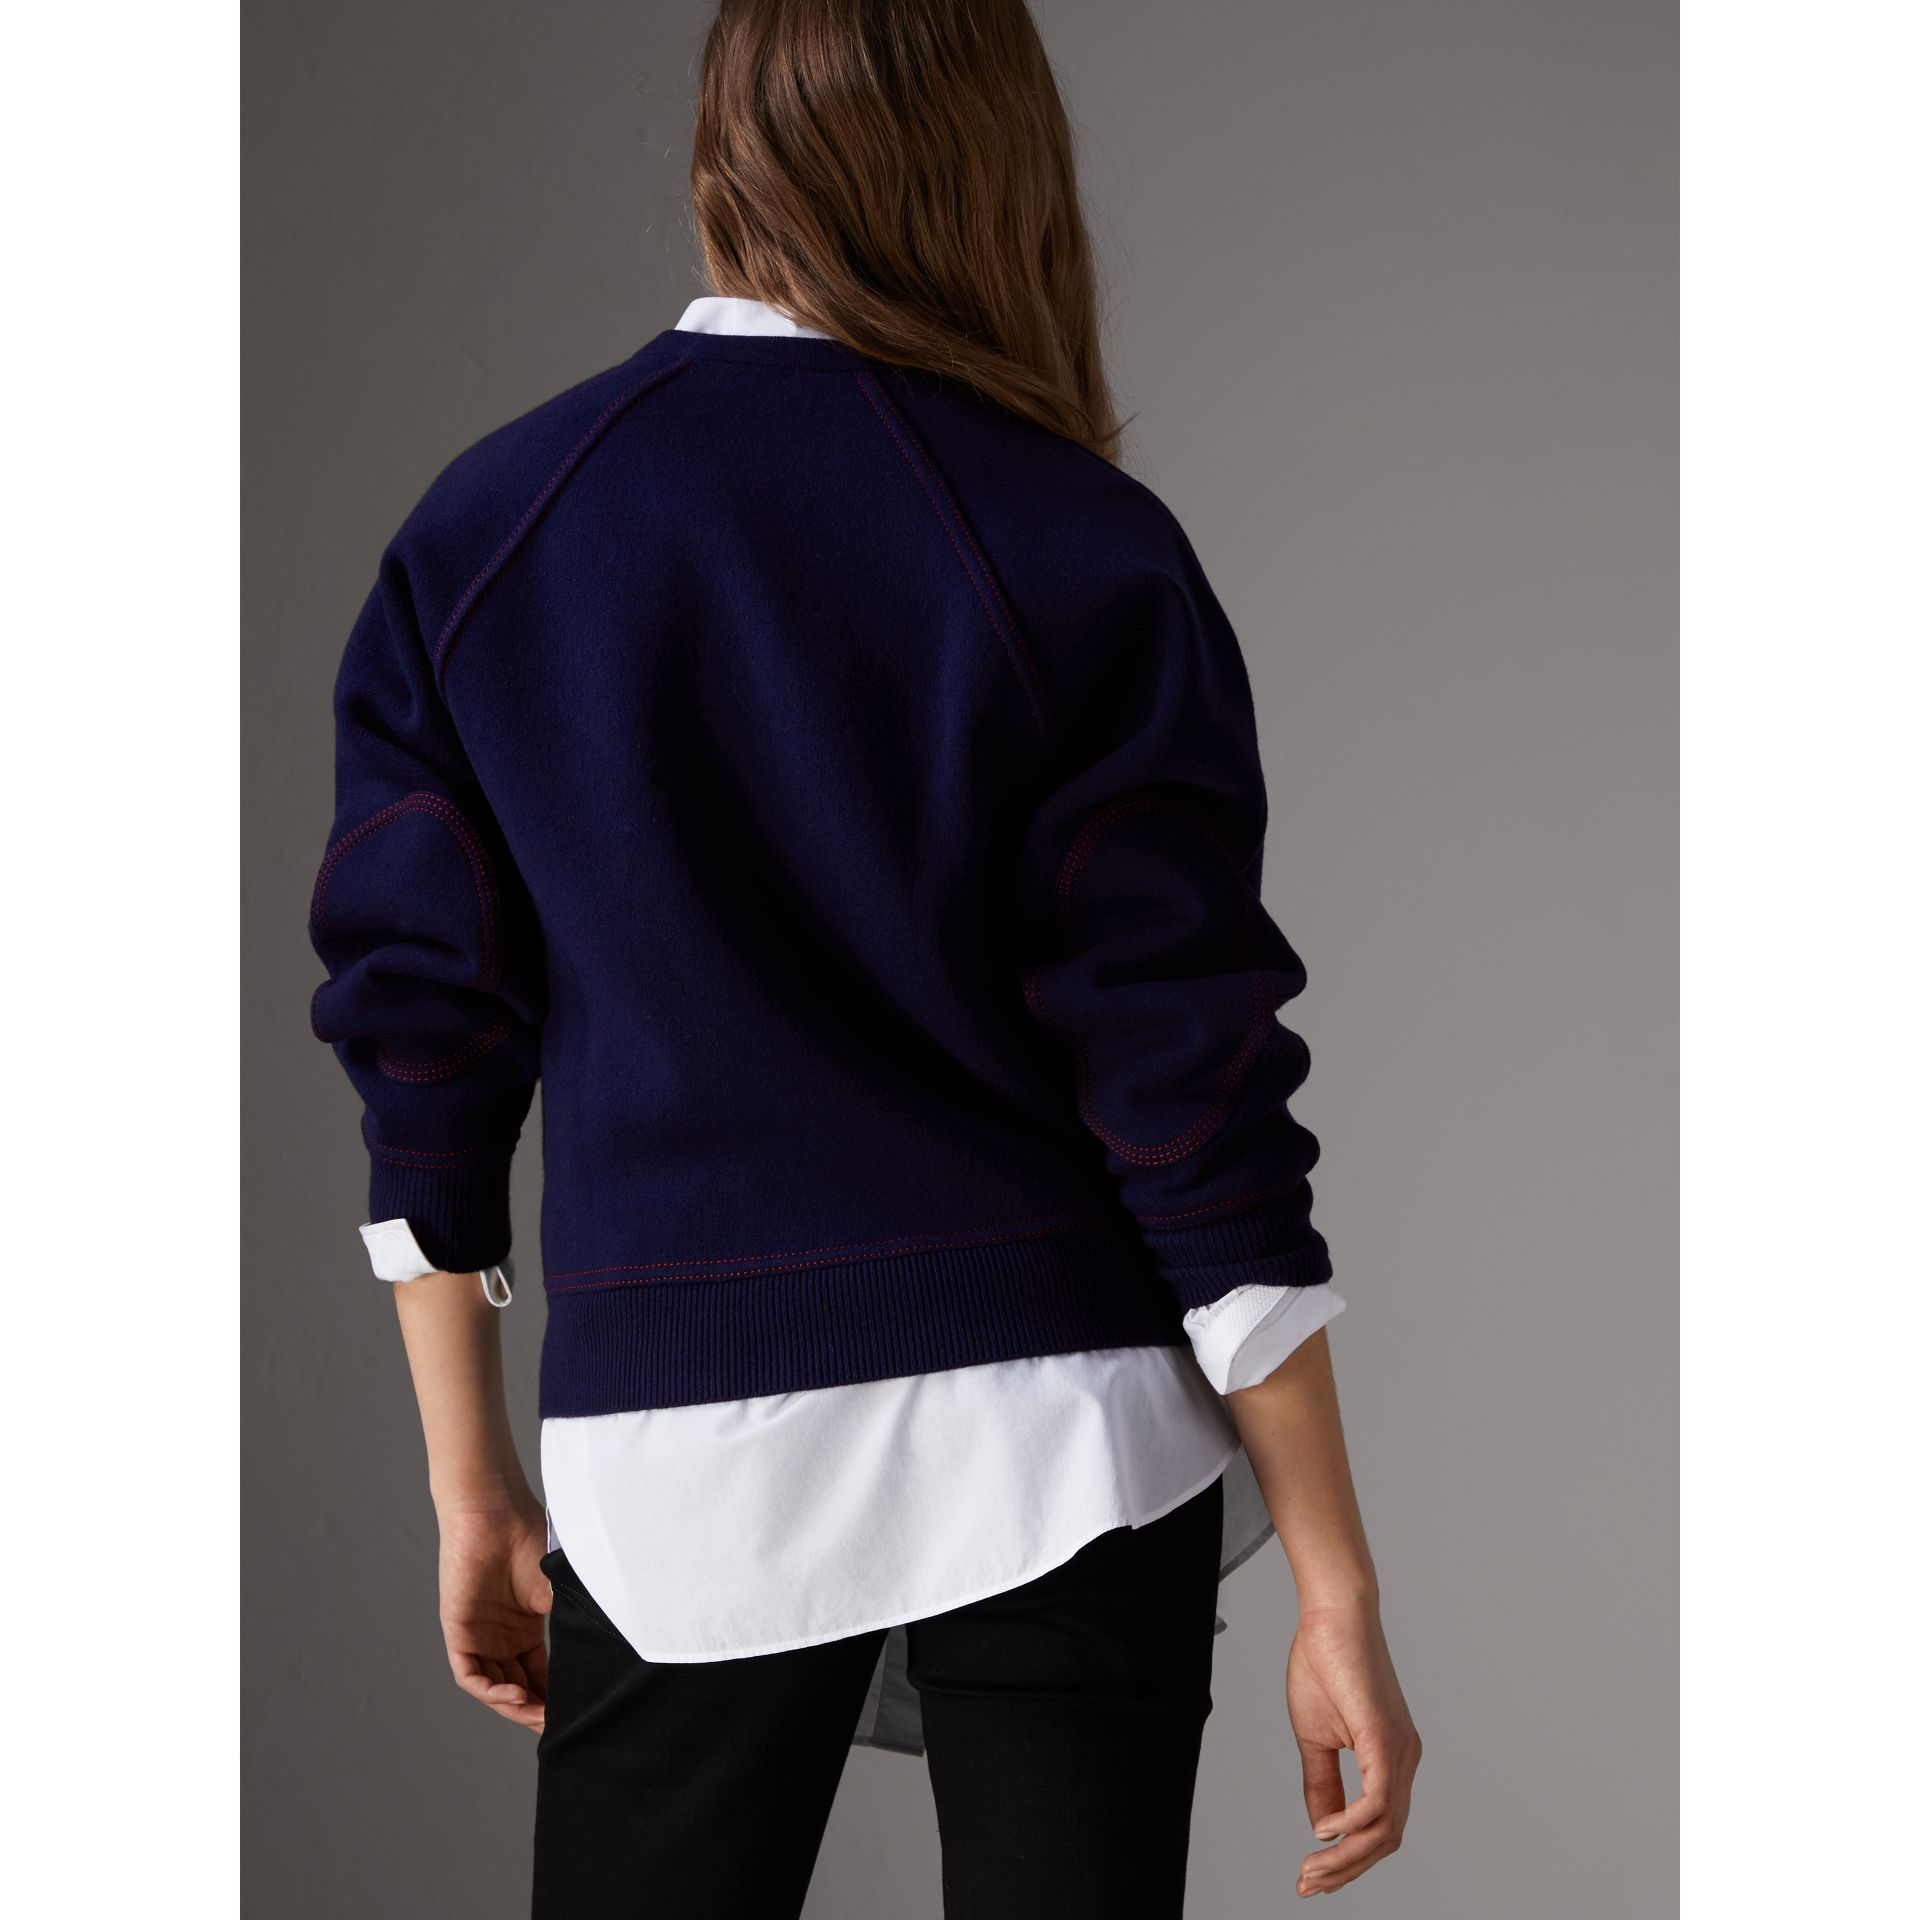 Topstitch Detail Wool Cashmere Blend Sweater in Navy - Women | Burberry - gallery image 2